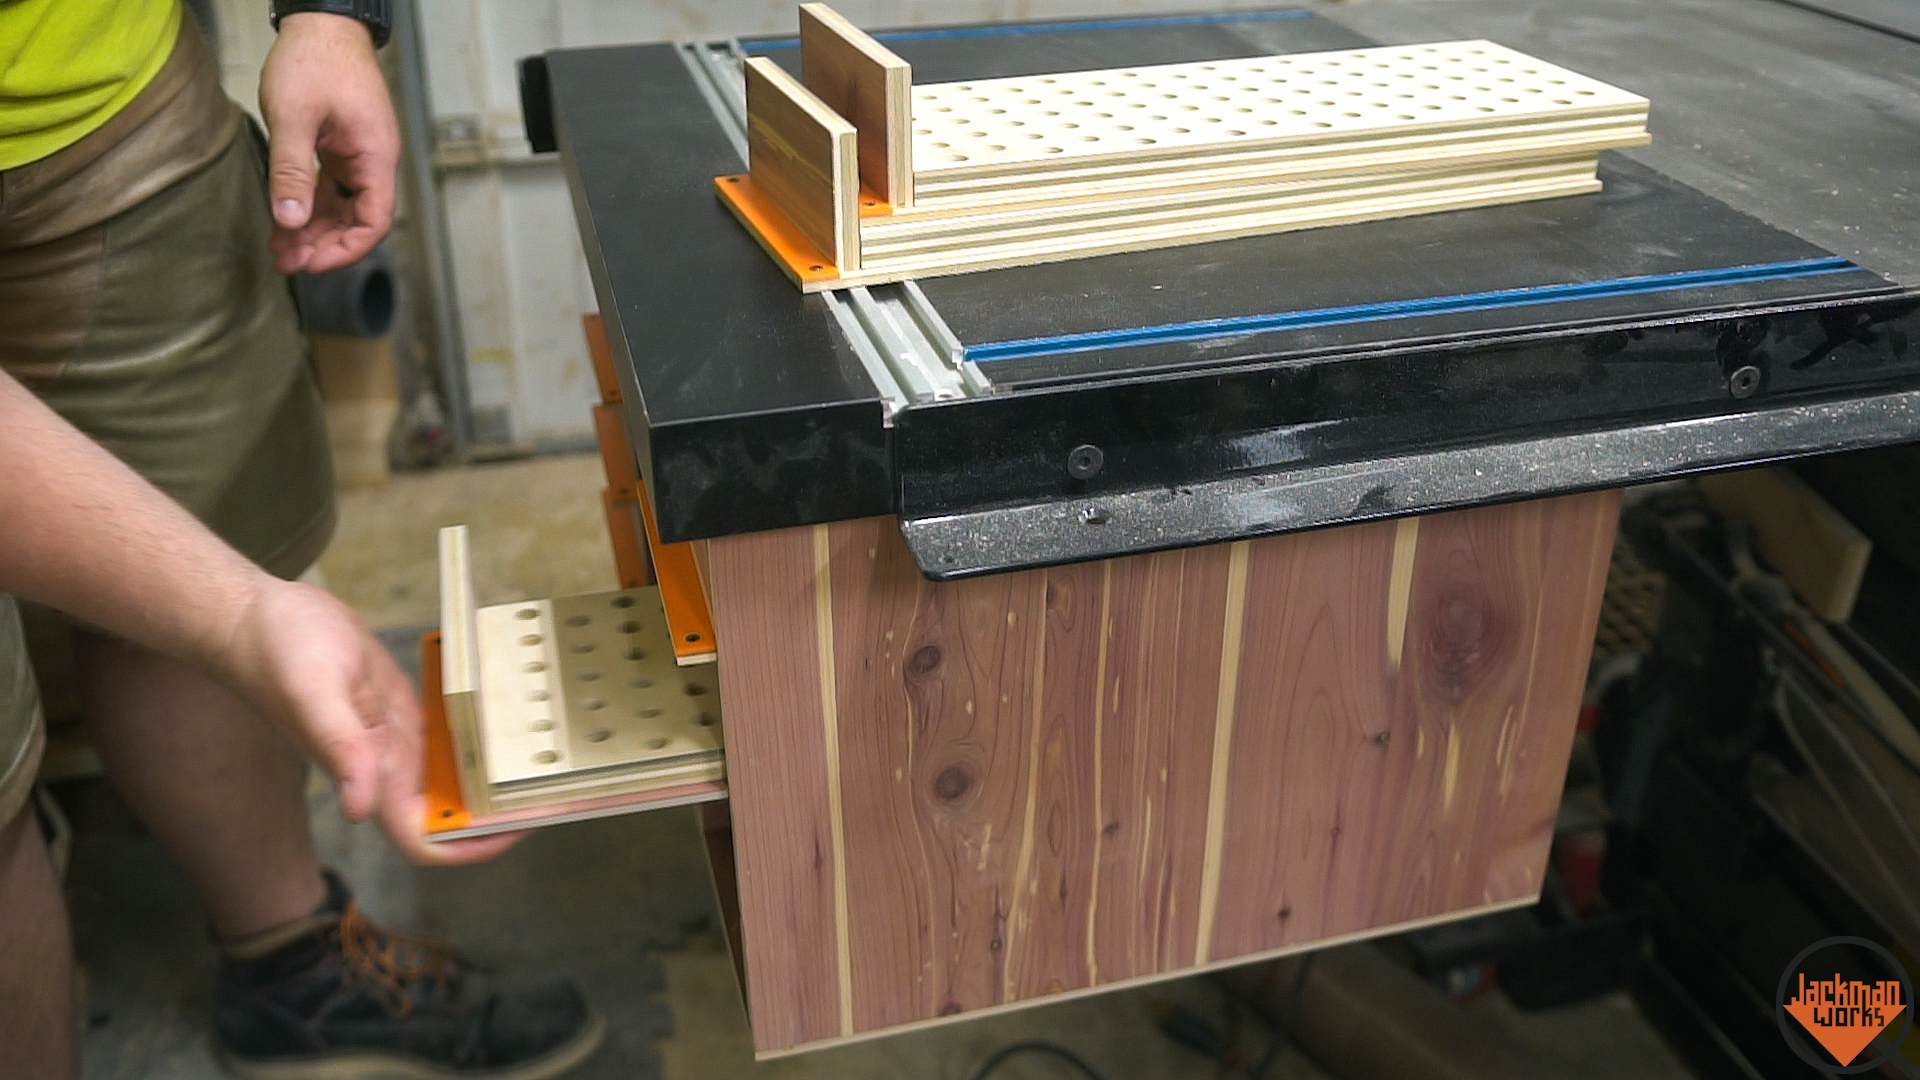 Router table storage cabinet 29 jackman works jackmanjackman worksfence systemrouter tablehow to build a router table woodworkingrouter liftshop storagestorageorganizationworkshop organization greentooth Gallery